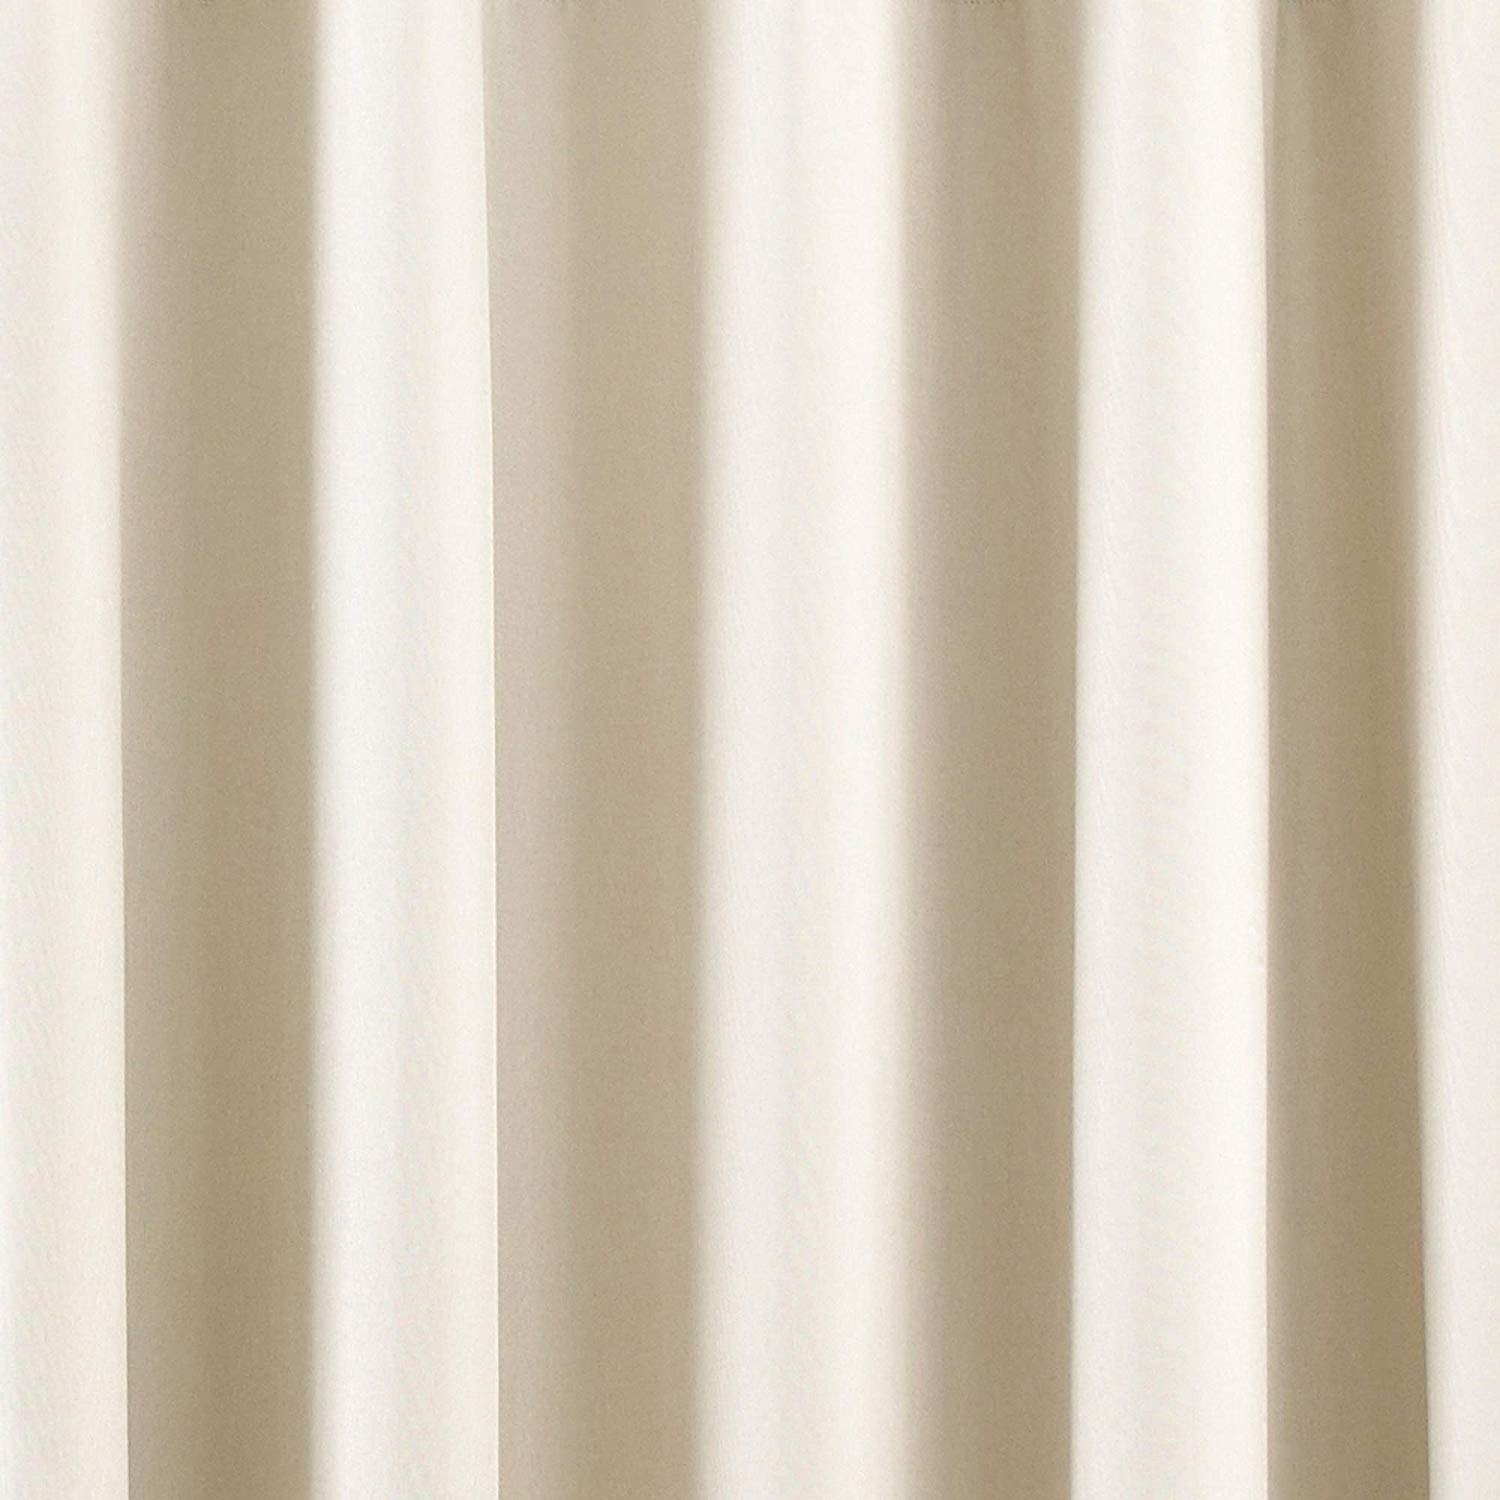 The Home Furnishings Company Ivory Eyelet Blackout Curtains, Blind and Cushion